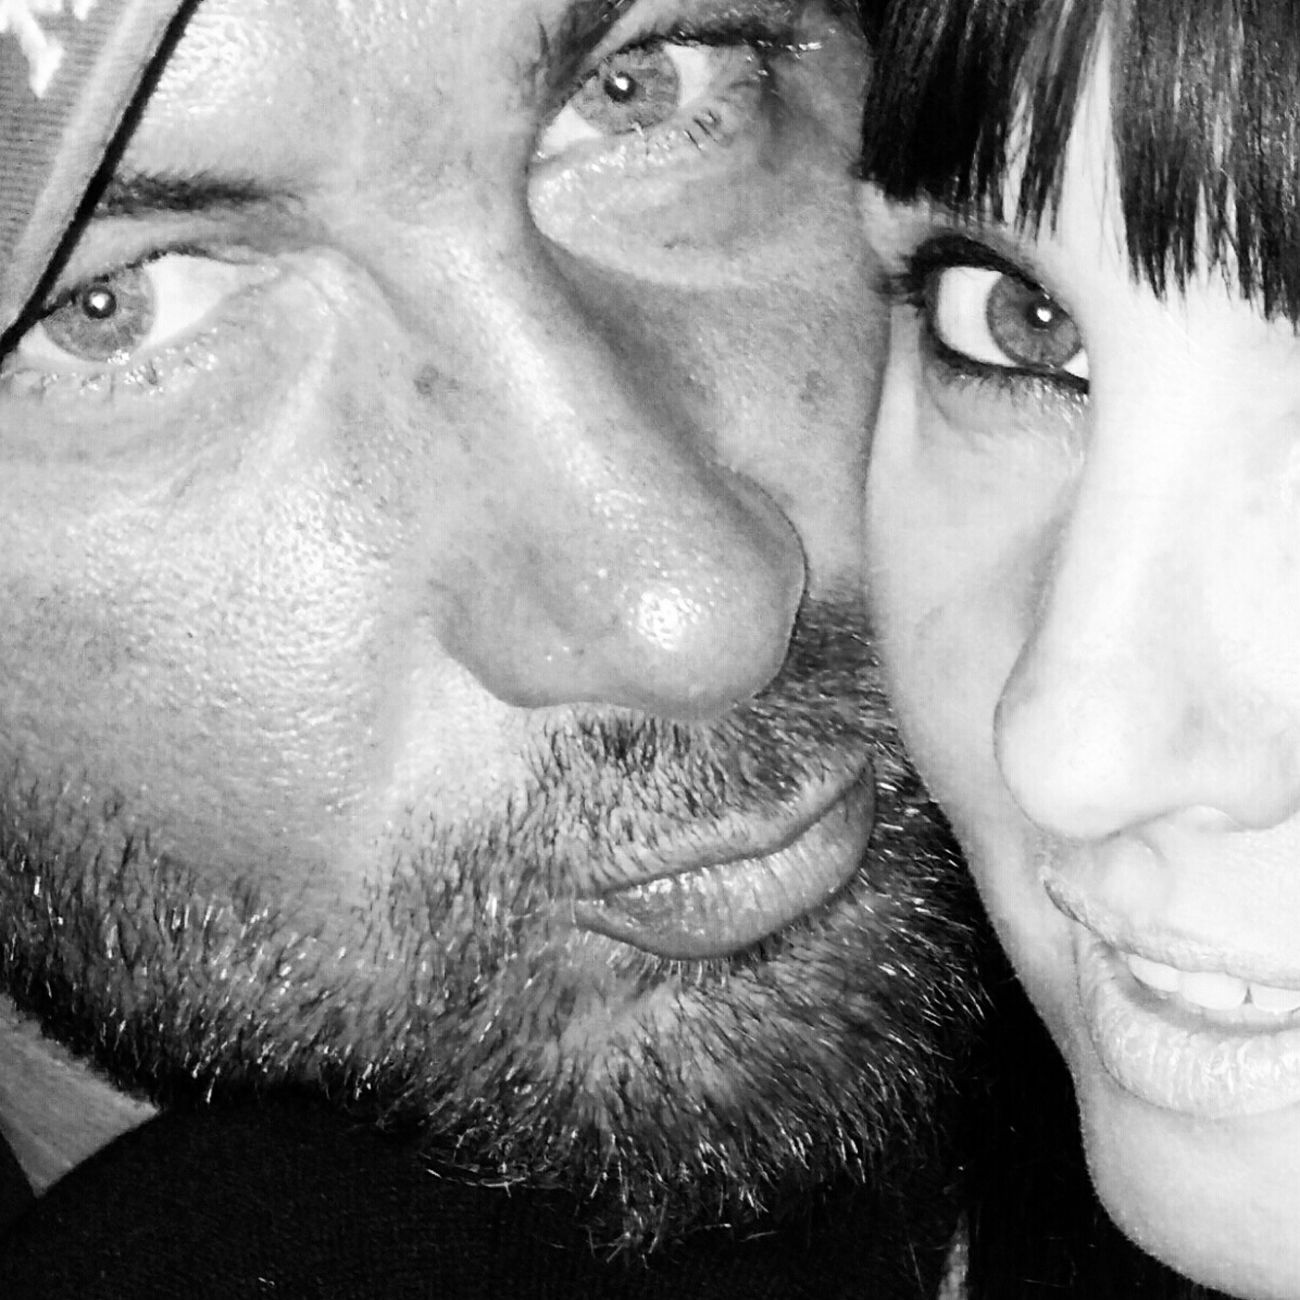 Two People Headshot Looking At Camera Human Face Portrait Real People People Photooftheday Black And White Collection  Blackandwhitephotography Black&white Black And White Portrait Togetherness Self Portrait Selfportrait Thats Me  Selfies Selfie Portrait Selfıe Thats Me!